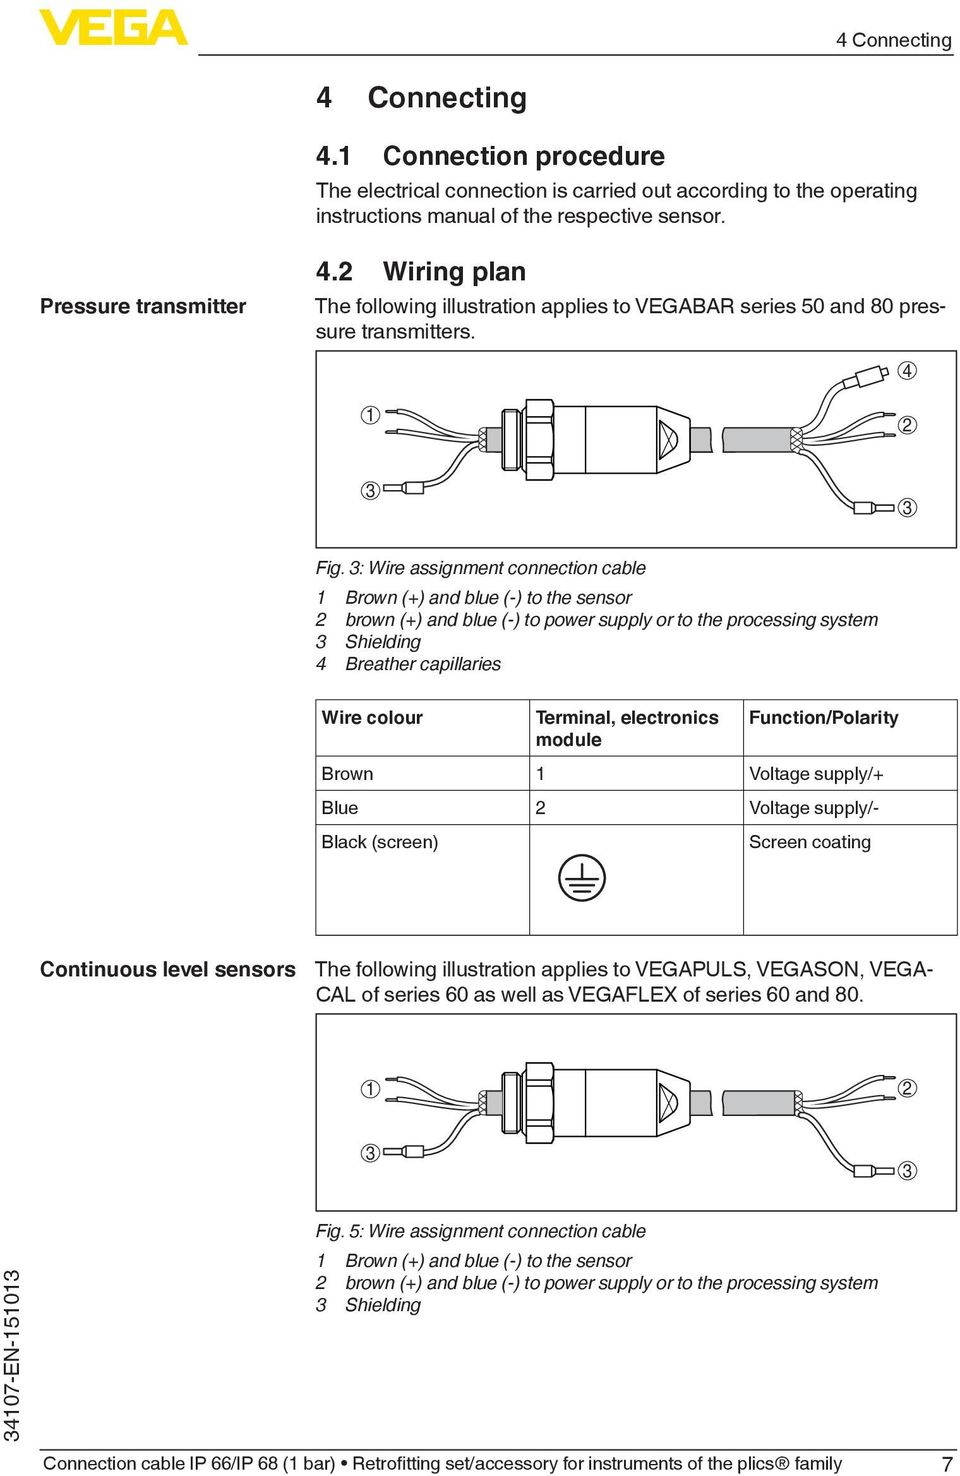 : Wire assignment connection cable 1 Brown (+) and blue (-) to the sensor 2 brown (+) and blue (-) to power supply or to the processing system Shielding 4 Breather capillaries Wire colour Terminal,